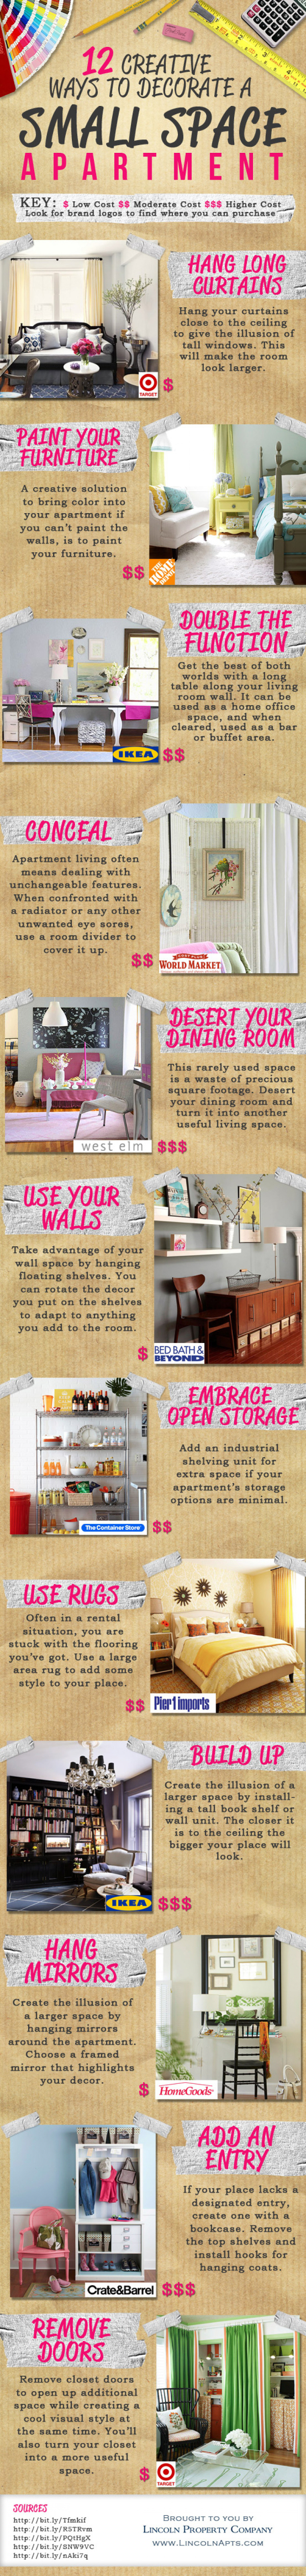 16 Creative Ways to Decorate a Small Space Infographic